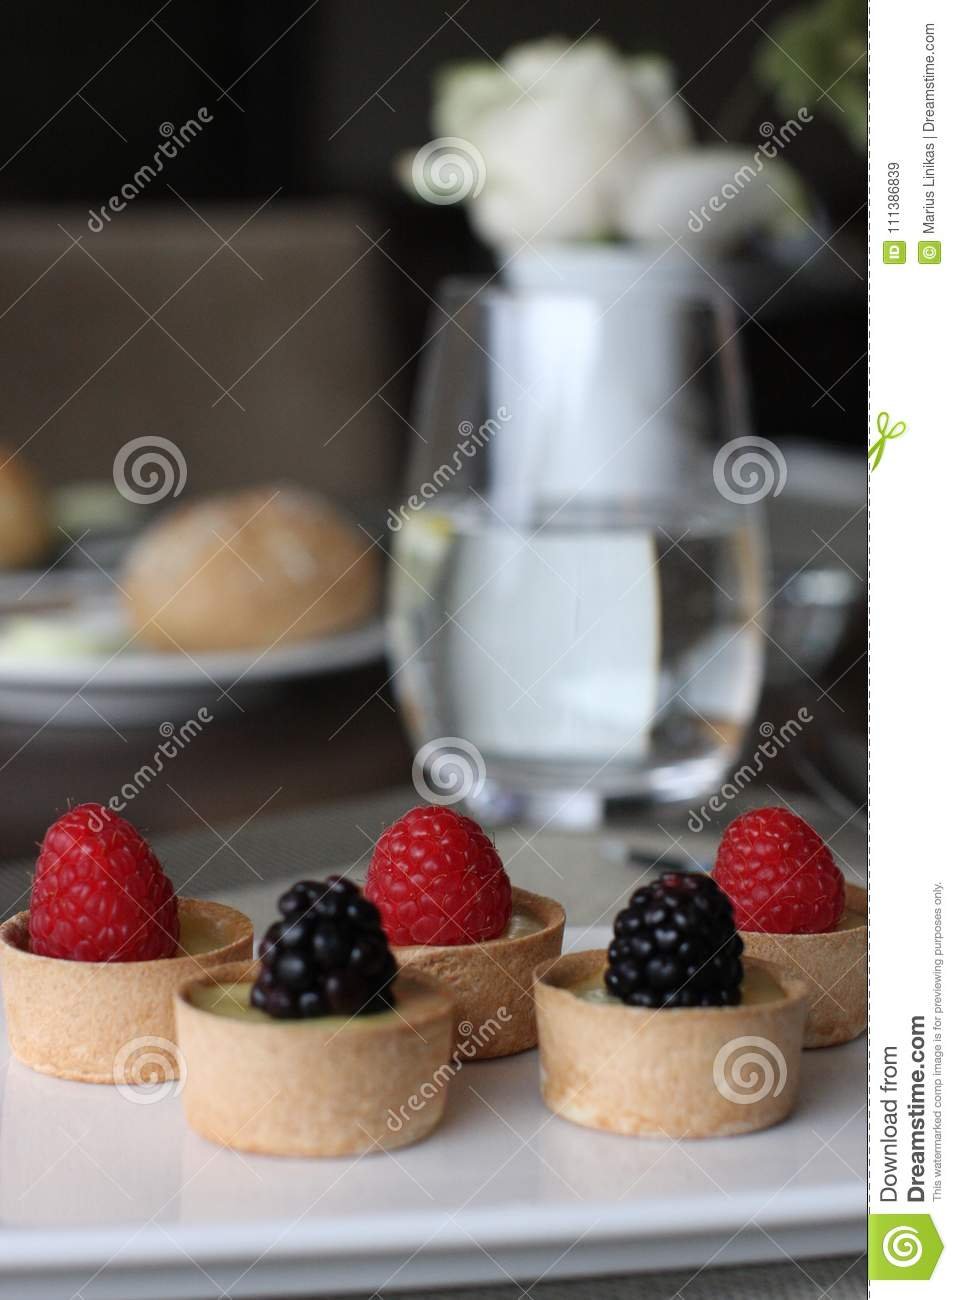 Restaurant sweet bites, small sweet berrie cups